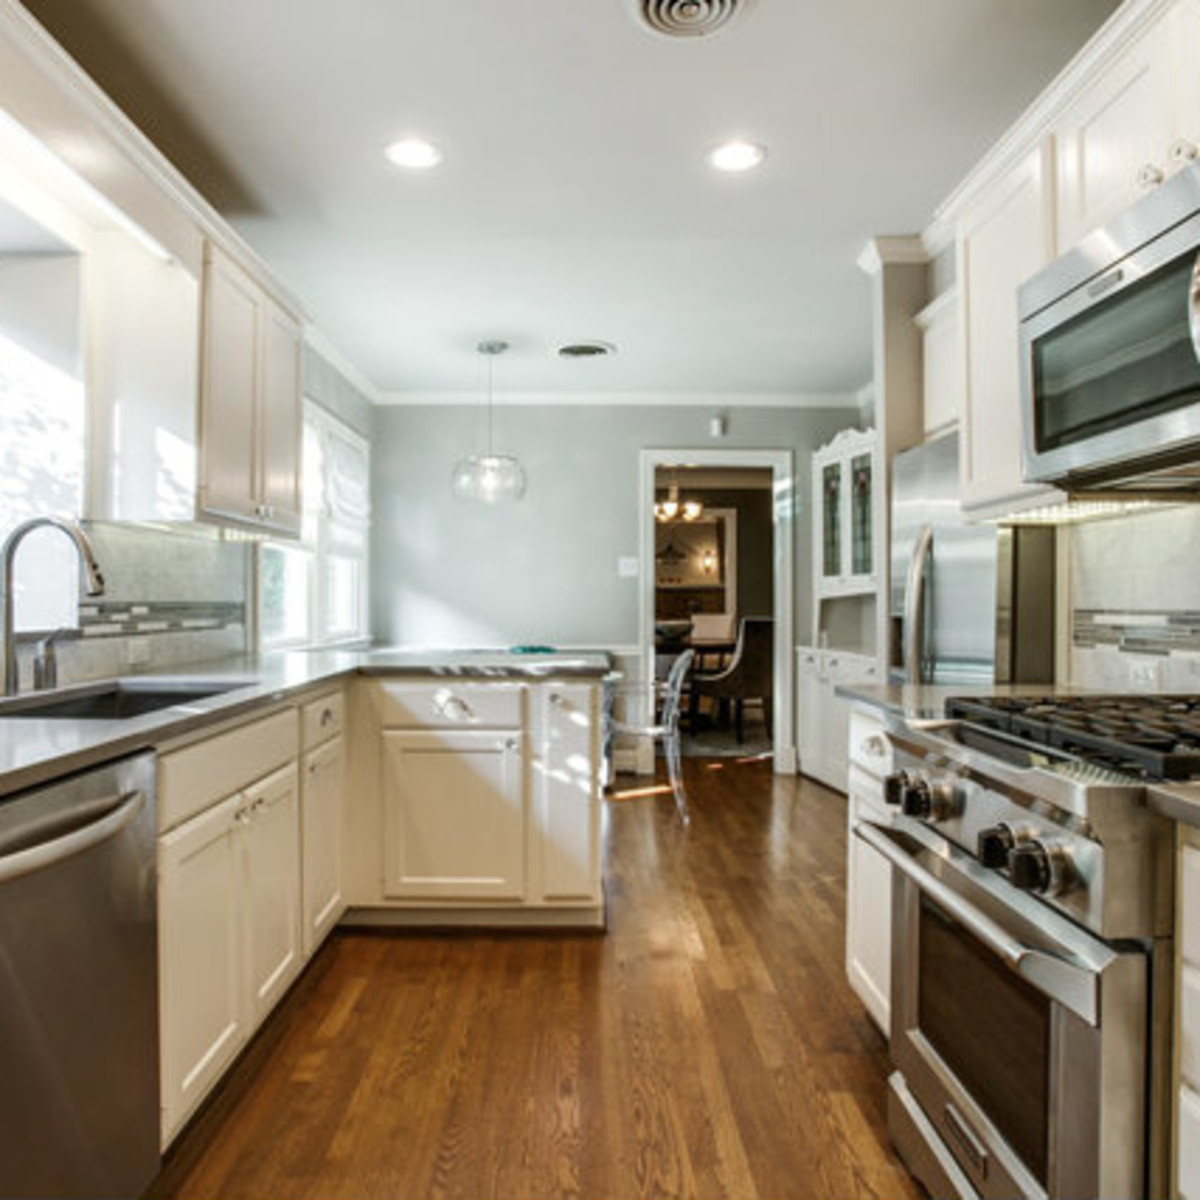 Kitchen at 811 Monte Vista Dr. in Dallas